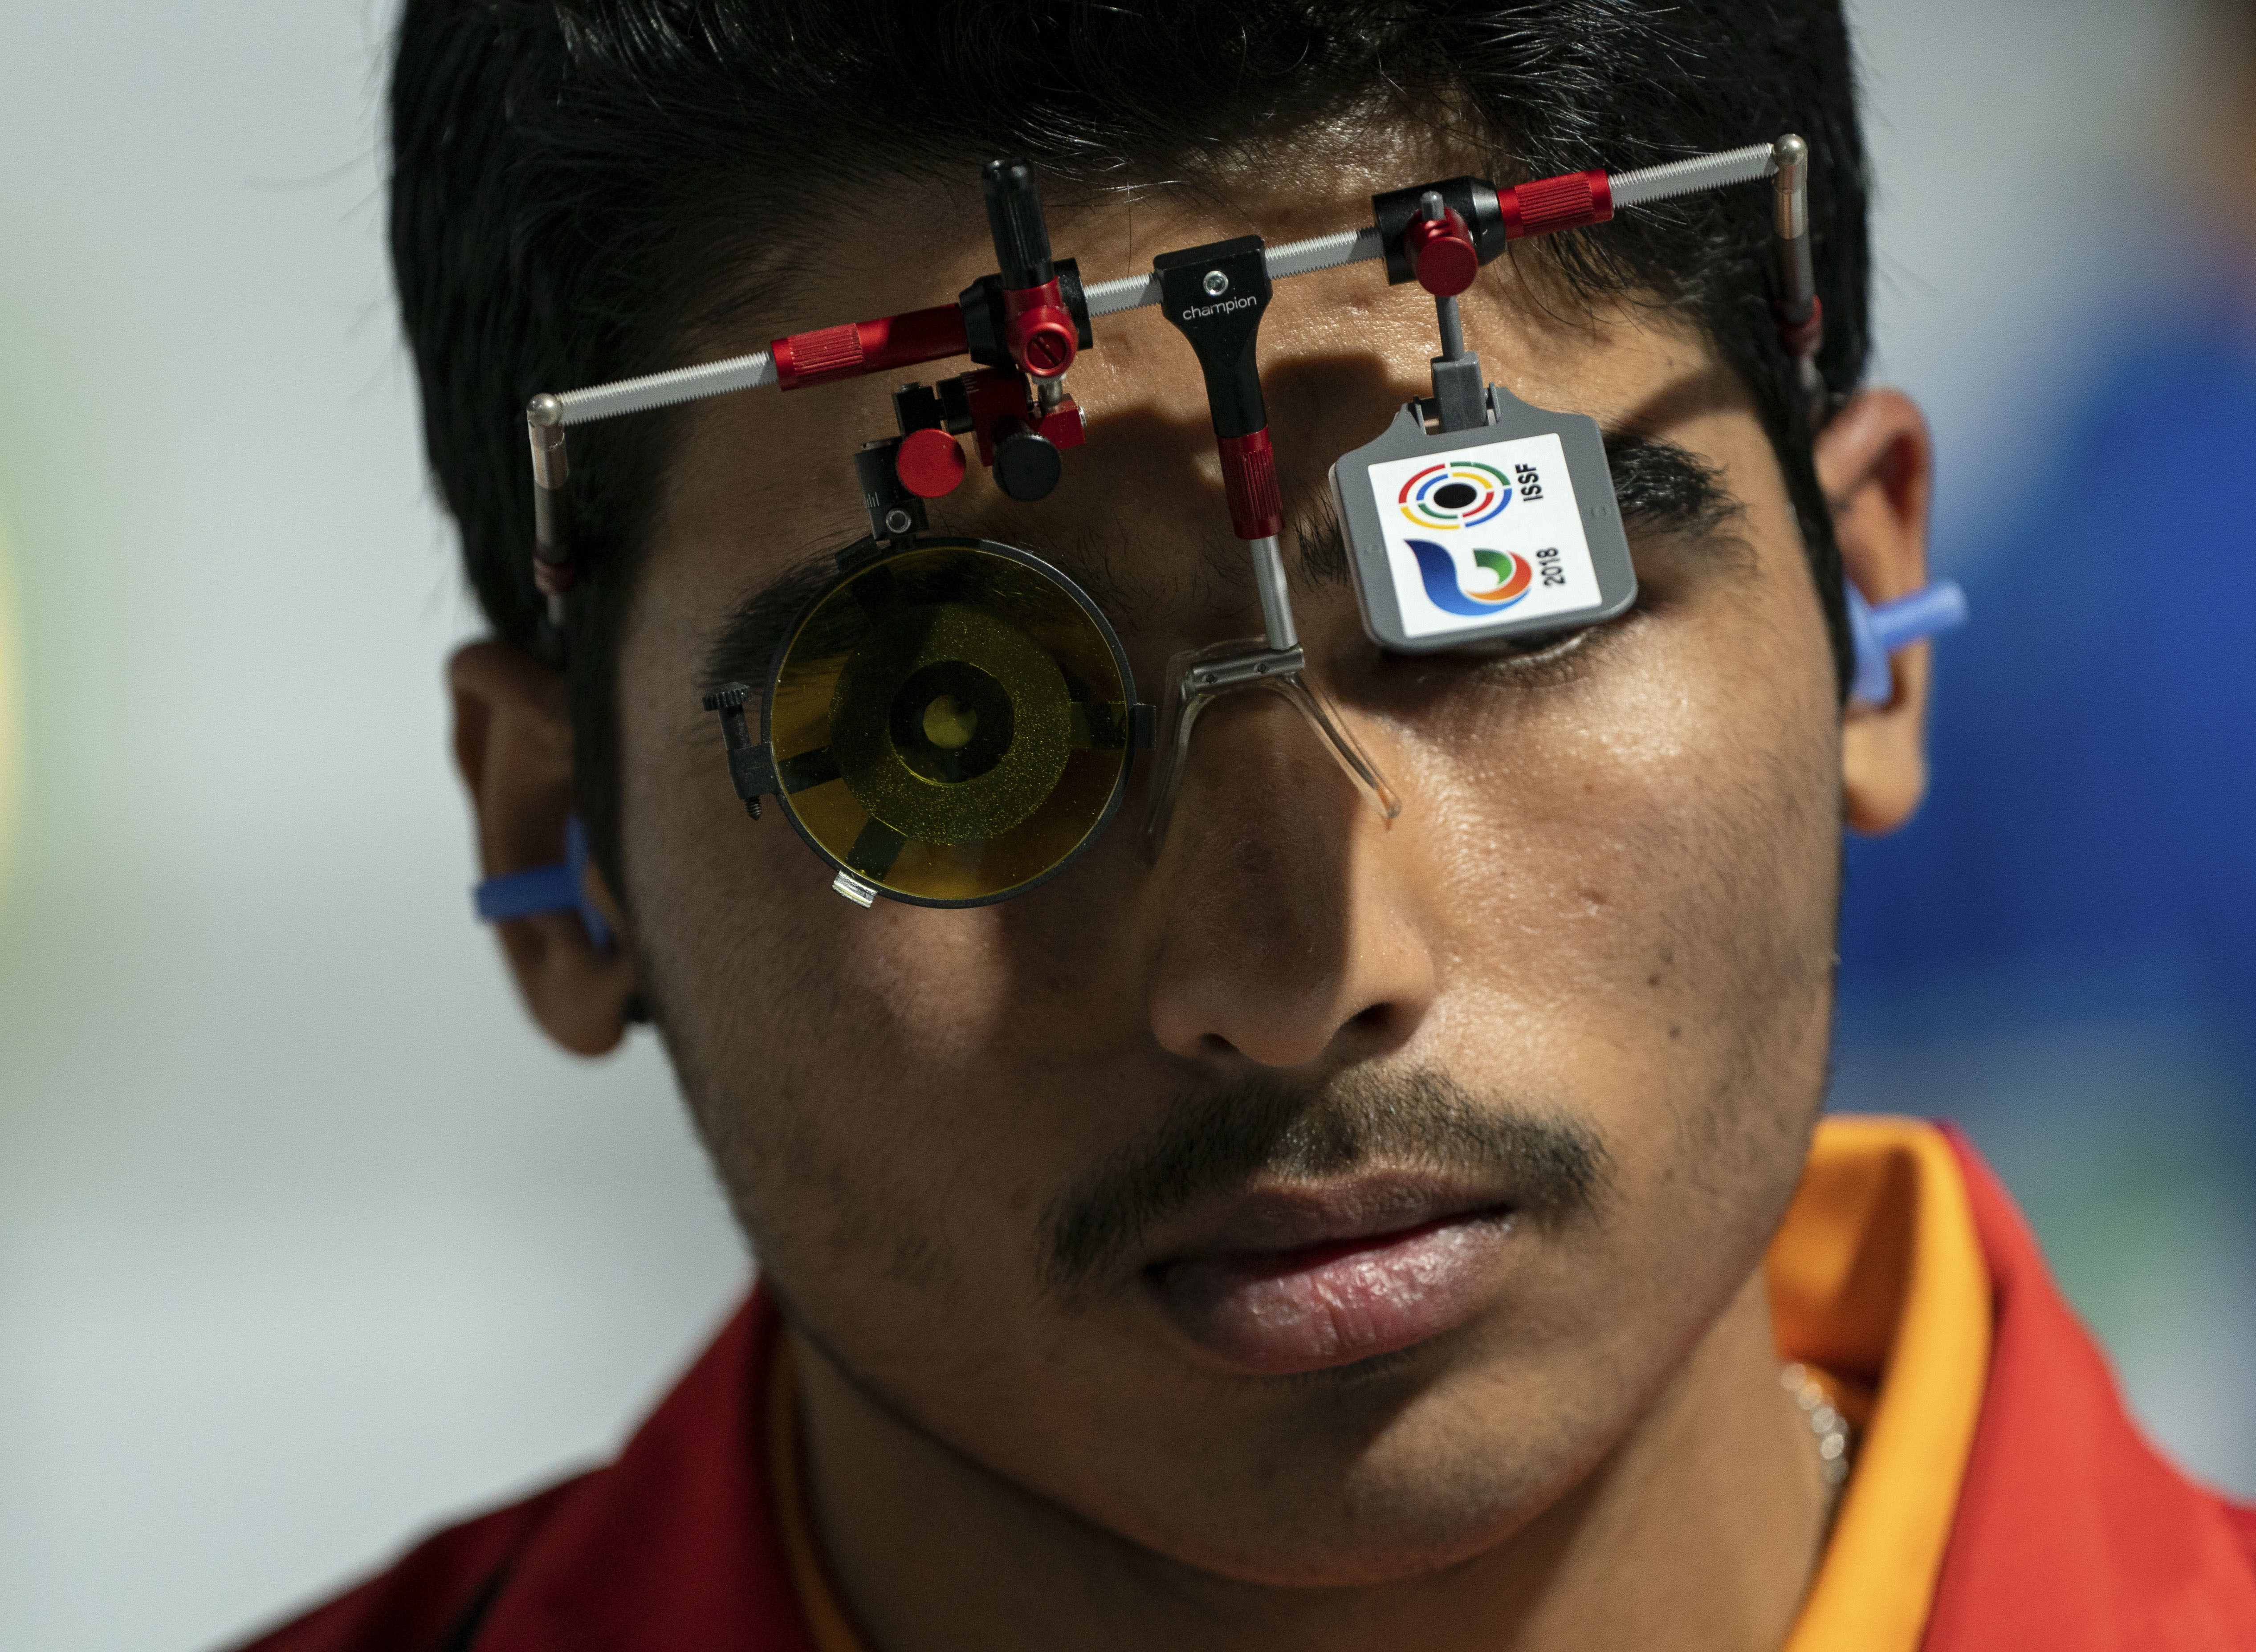 Chaudhary Saurabh from India, looks on during the shooting men's 10m air pistol final at the shooting range at Tecnopolis Park during the Youth Olympic Games in Buenos Aires, Argentina - AP